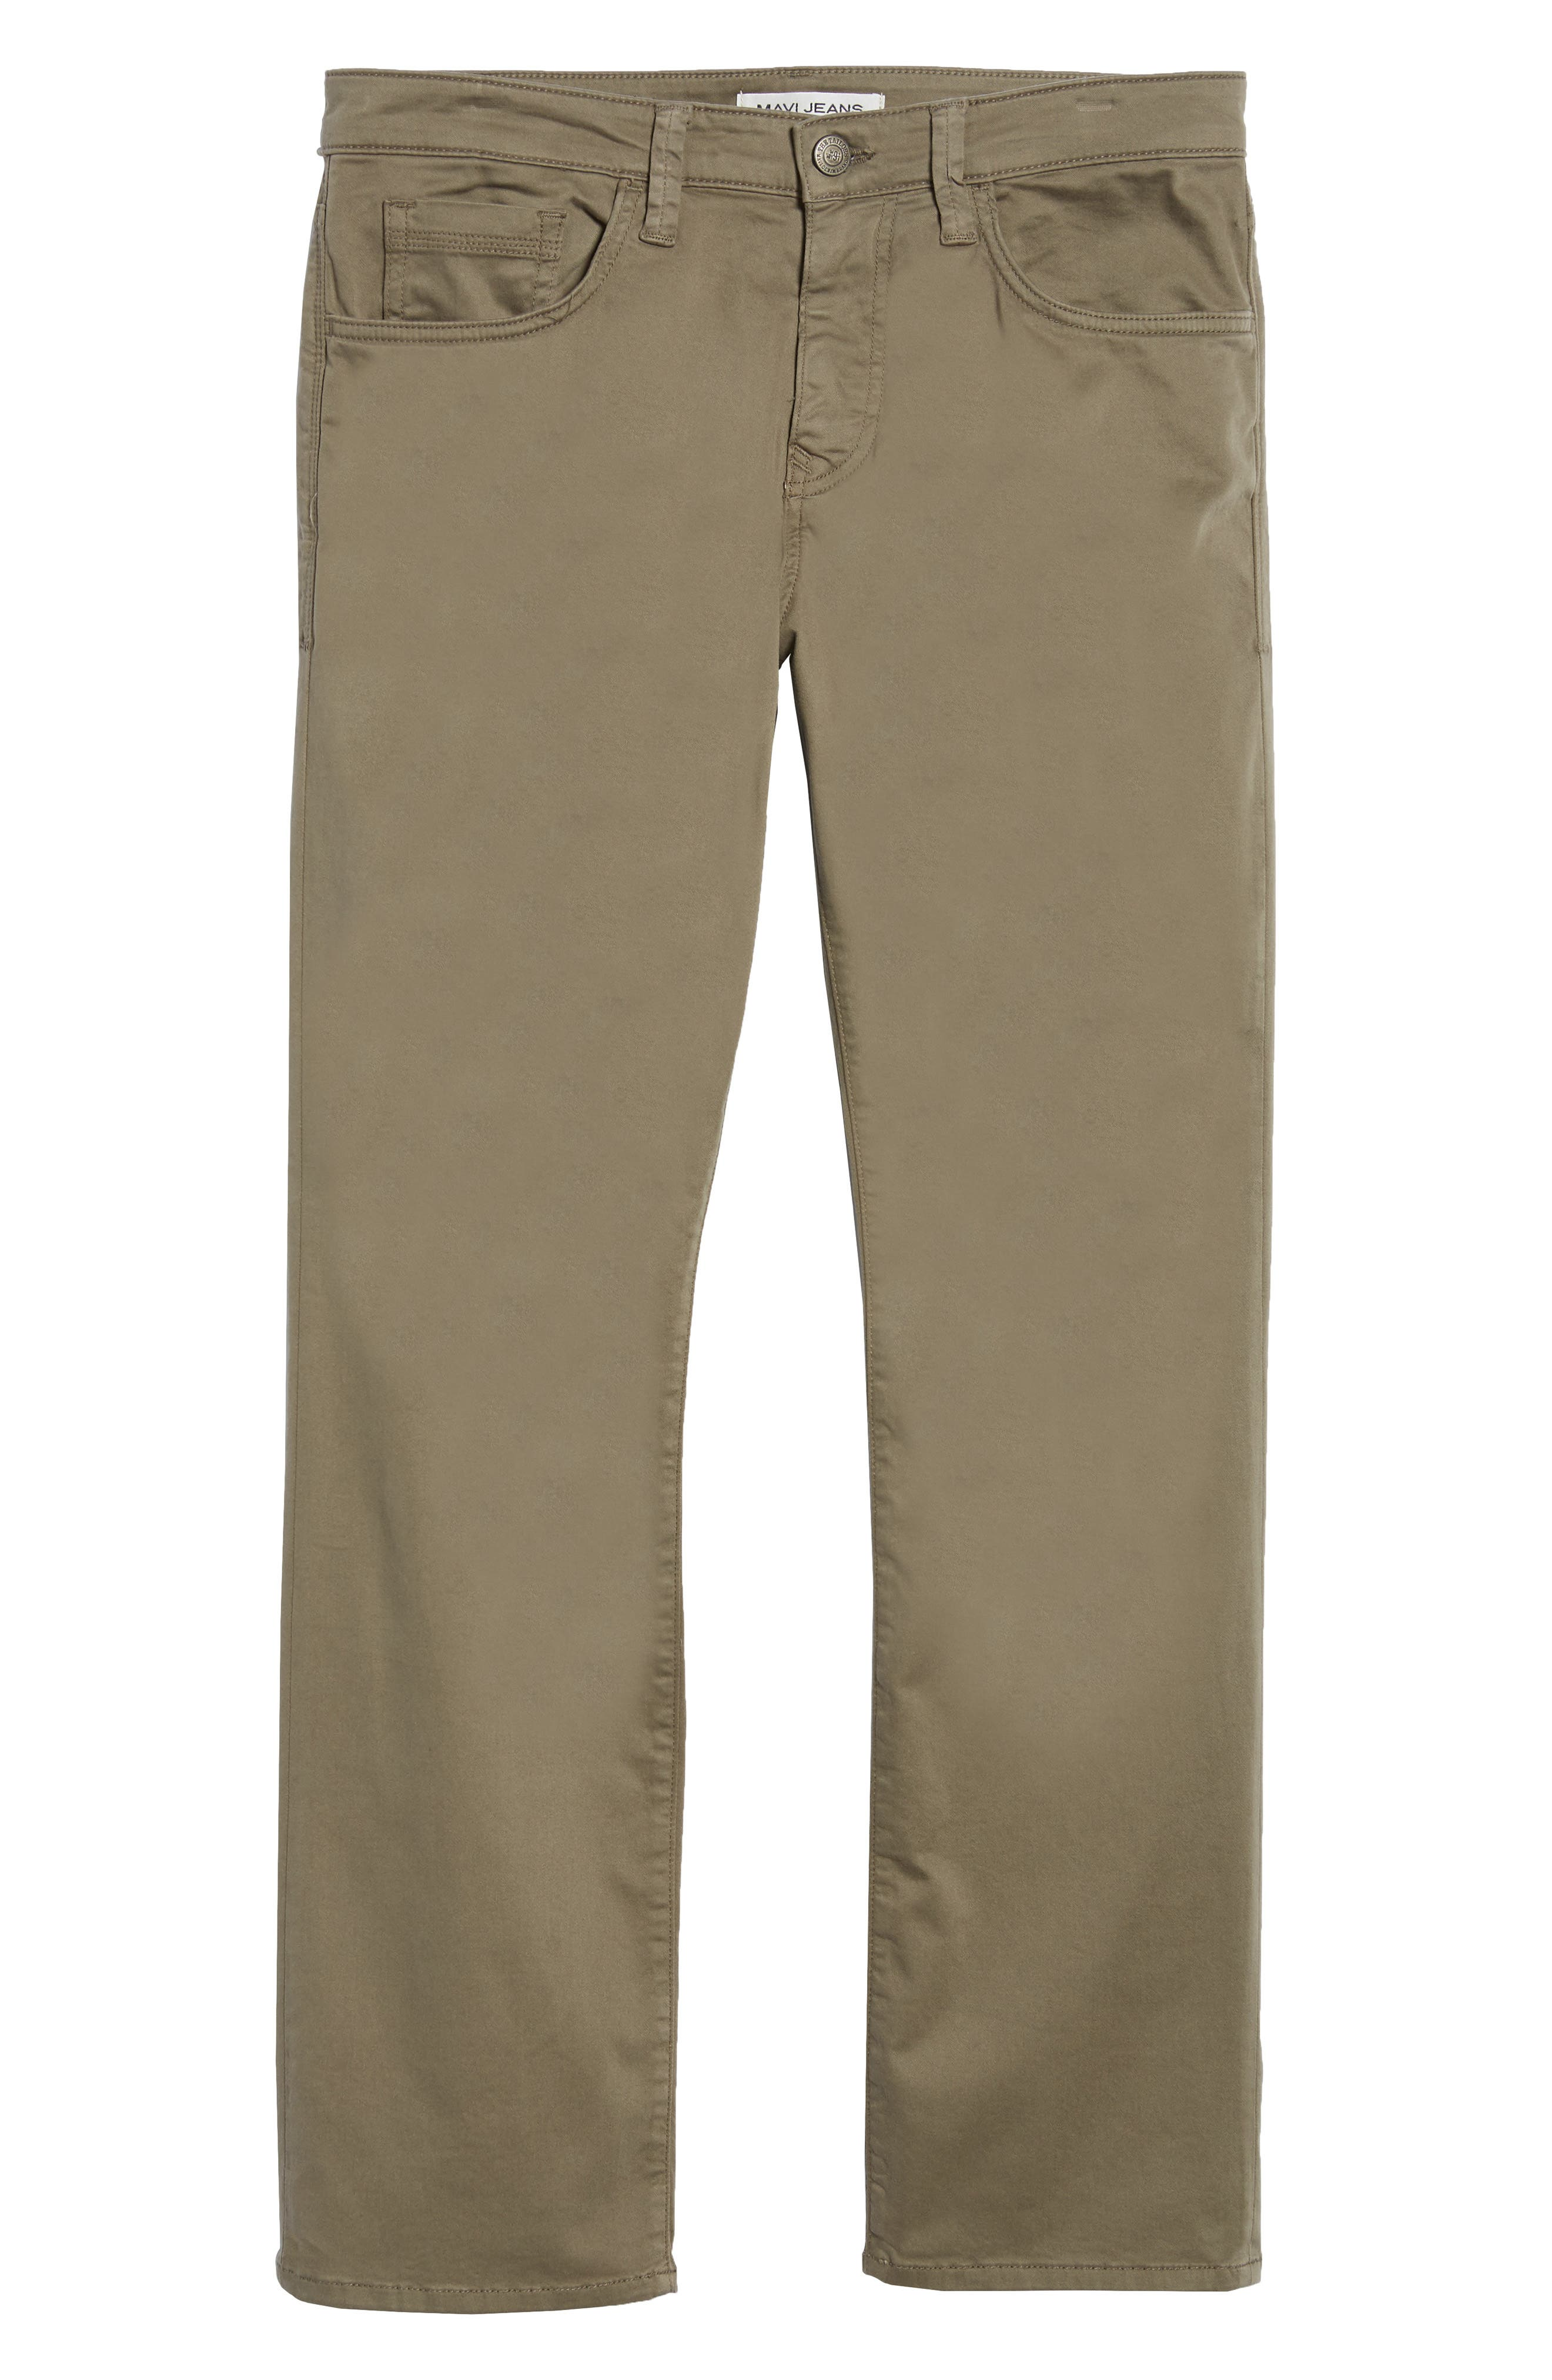 Matt Relaxed Fit Twill Pants,                             Alternate thumbnail 6, color,                             Dusty Olive